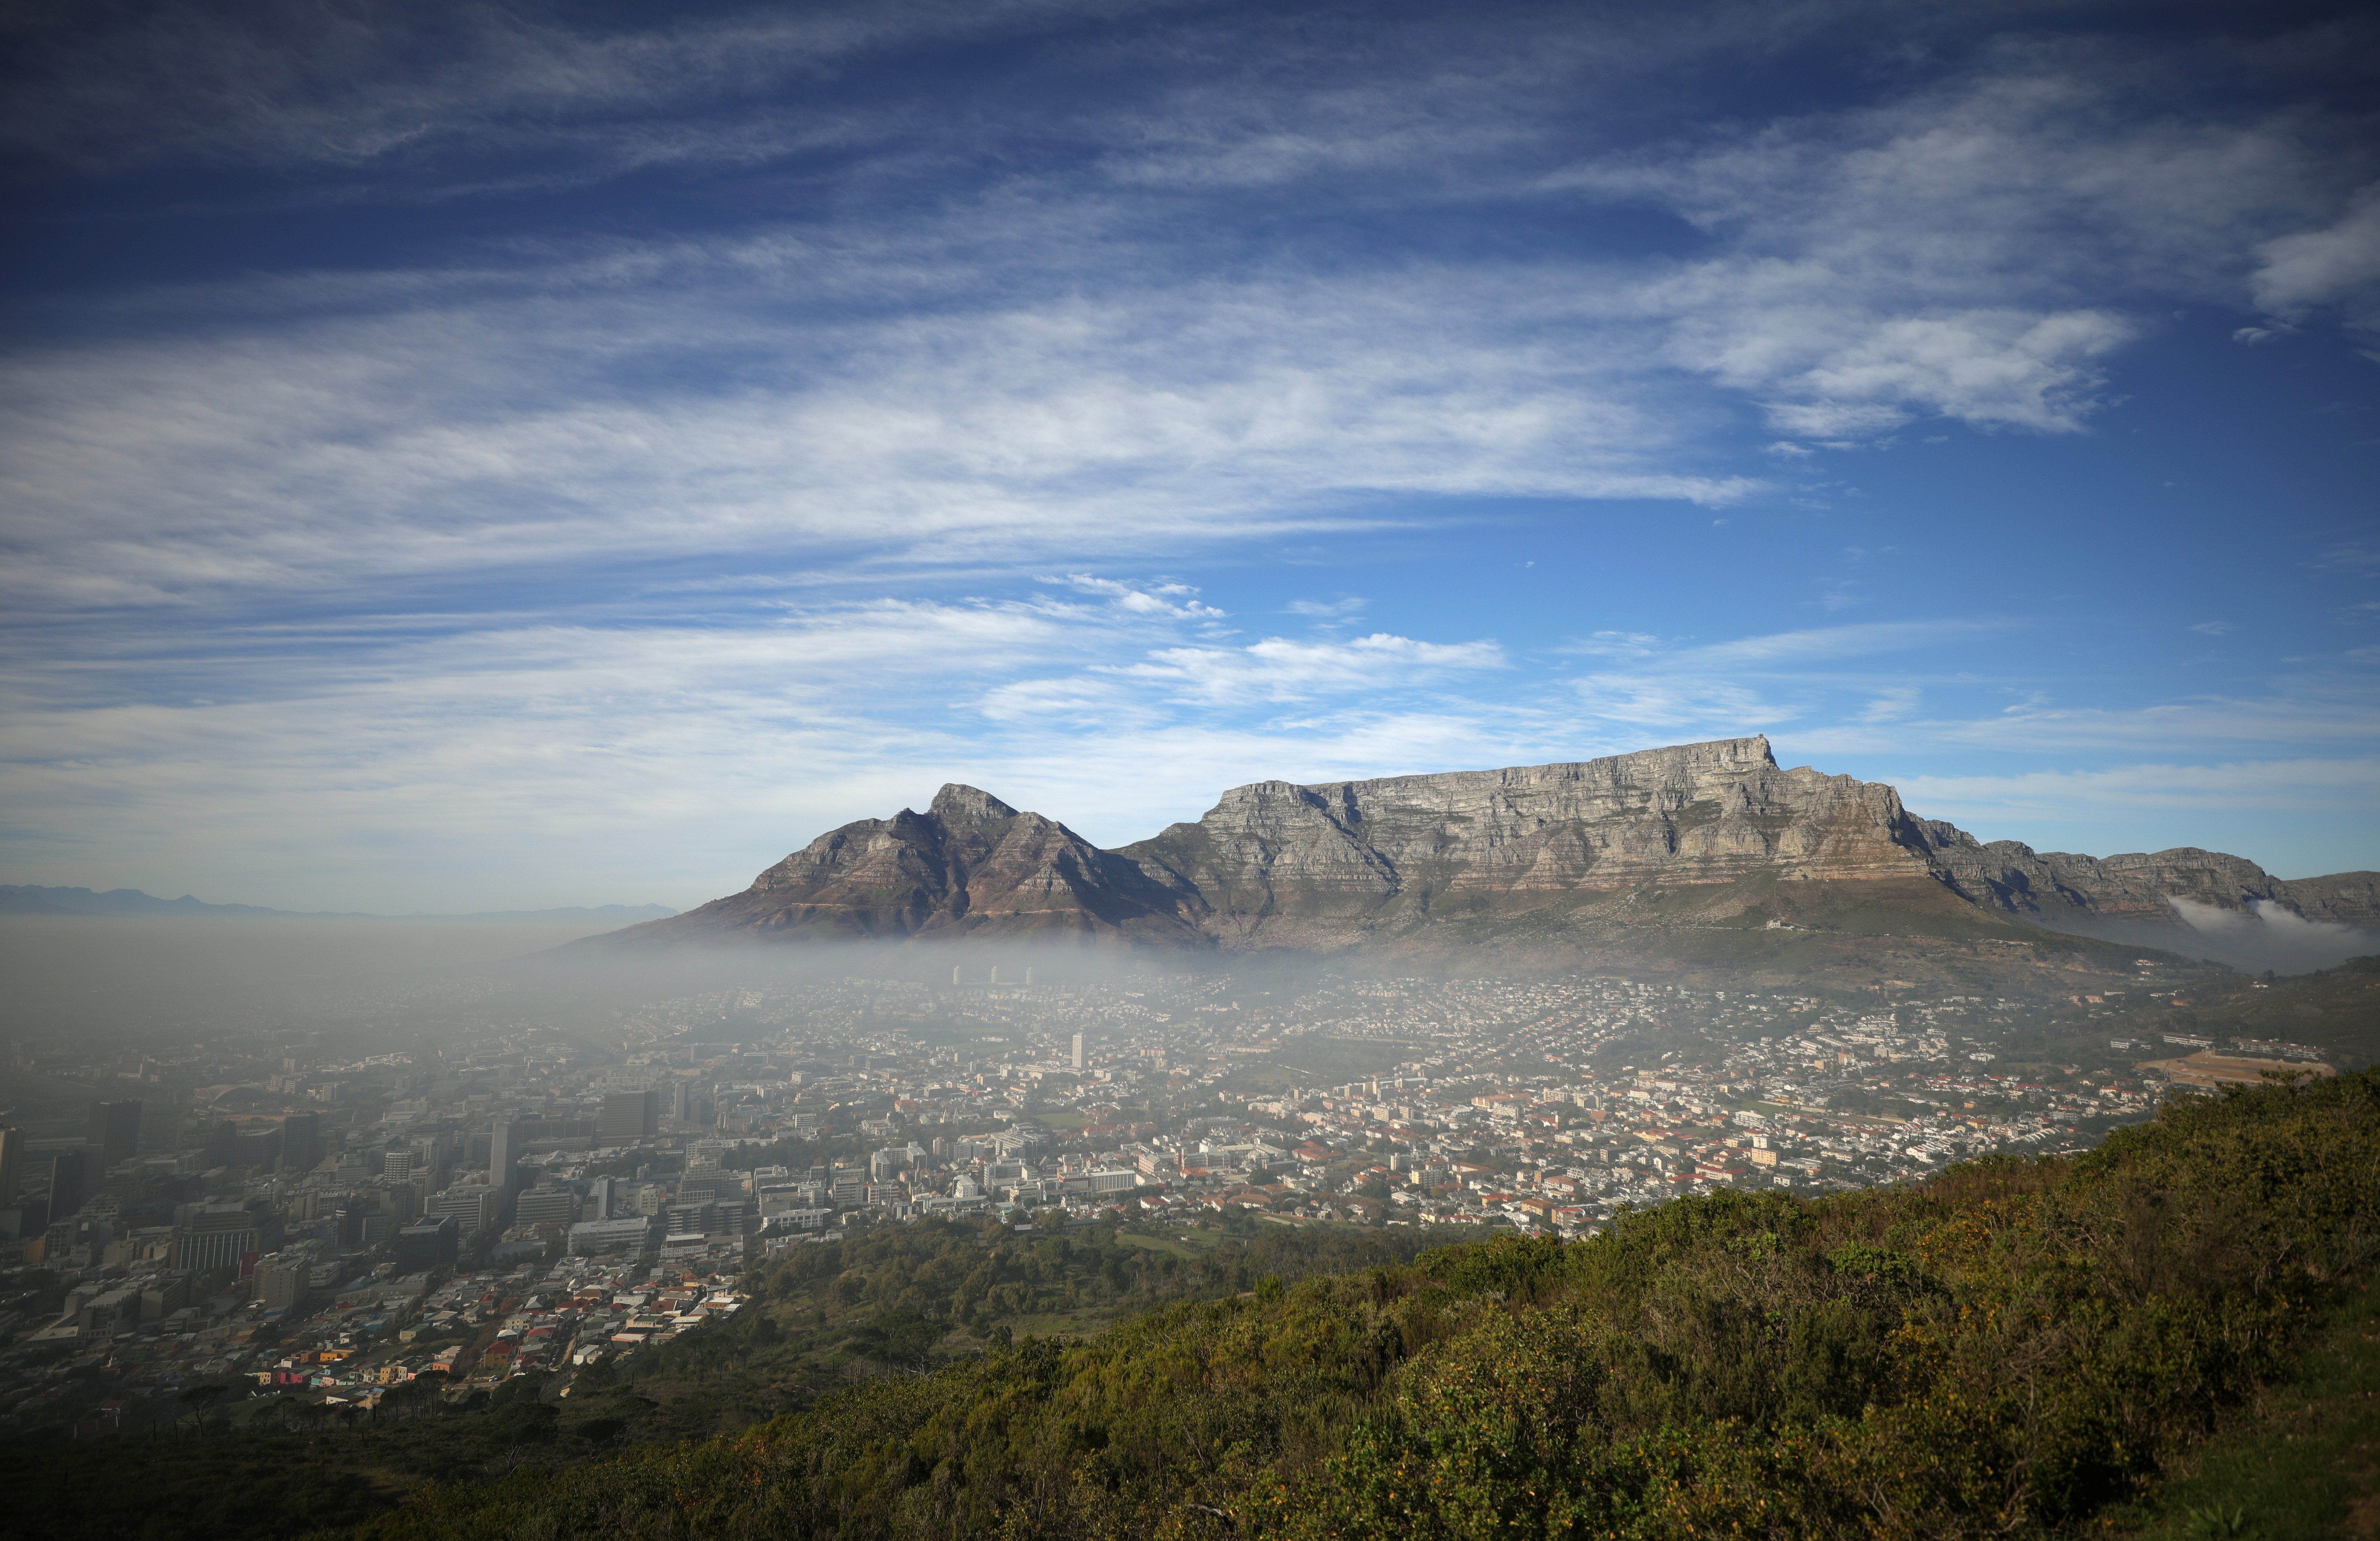 Seasonal fog disapates over the city beneath Table Mountain in Cape Town, South Africa, June 12,2021. REUTERS/Mike Hutchings - RC2YYN9T5LLQ